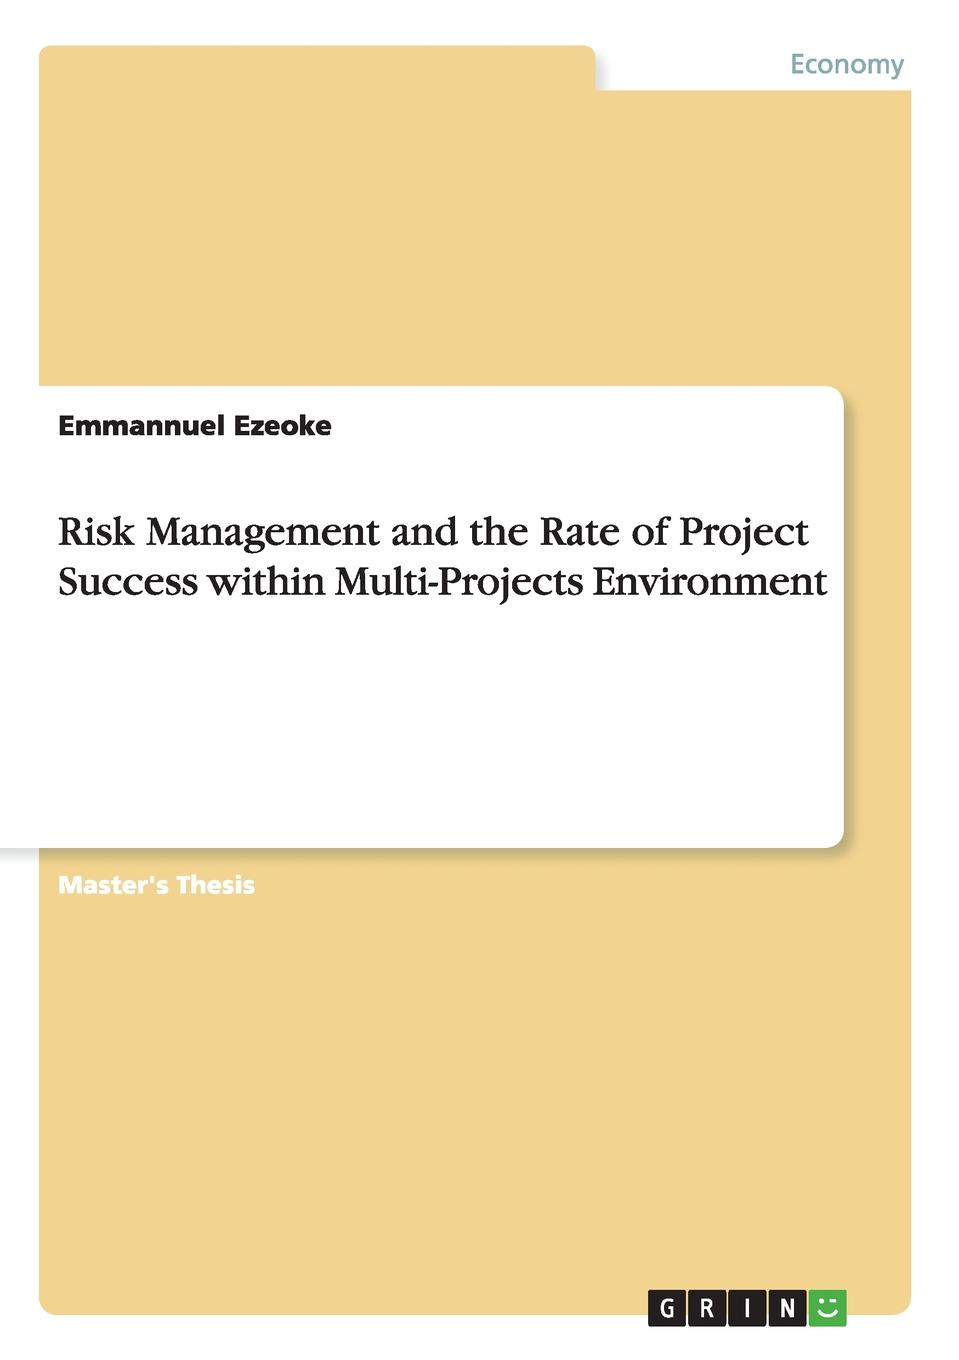 Emmannuel Ezeoke Risk Management and the Rate of Project Success within Multi-Projects Environment